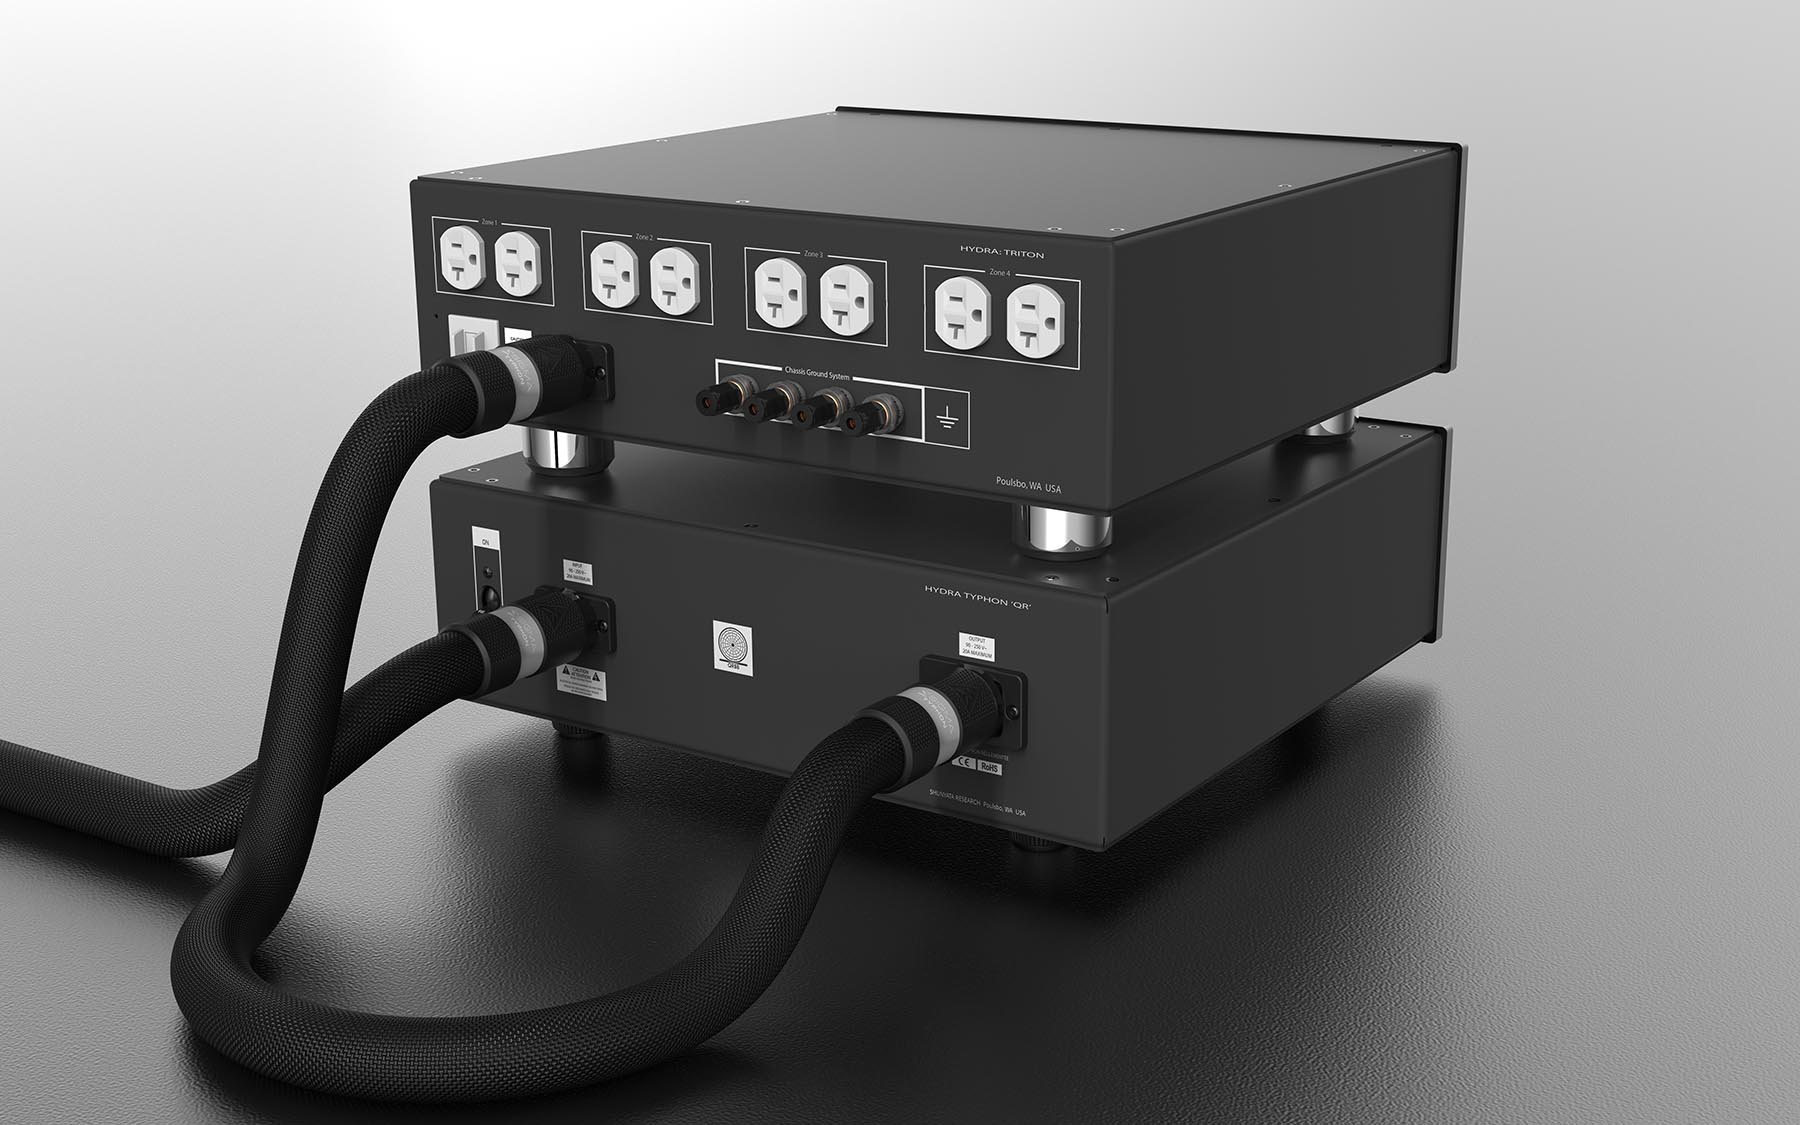 Hydra Typhon Qr Shunyata Research Amp Breaker Can Be Upgraded To 30 Home Improvement Stack Power Distributors